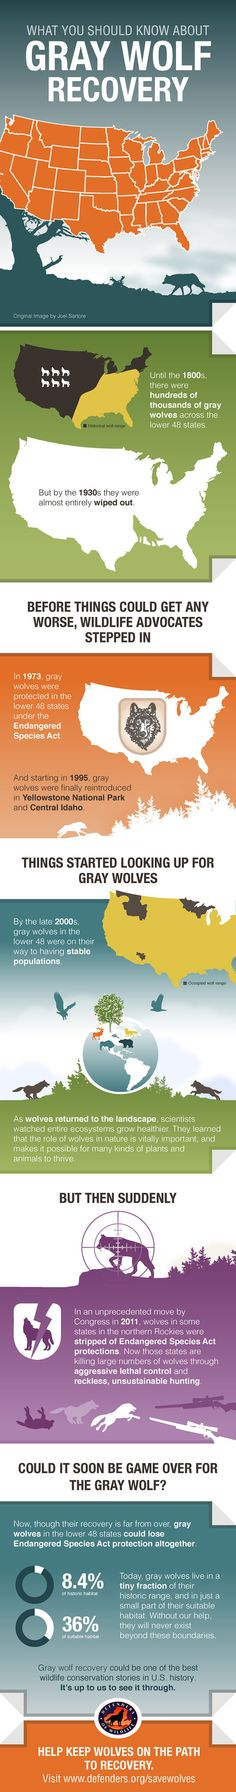 #Infograph HELP KEEP WOLVES ON THE PATH TO RECOVERY. http://www.defenders.org/savewolves